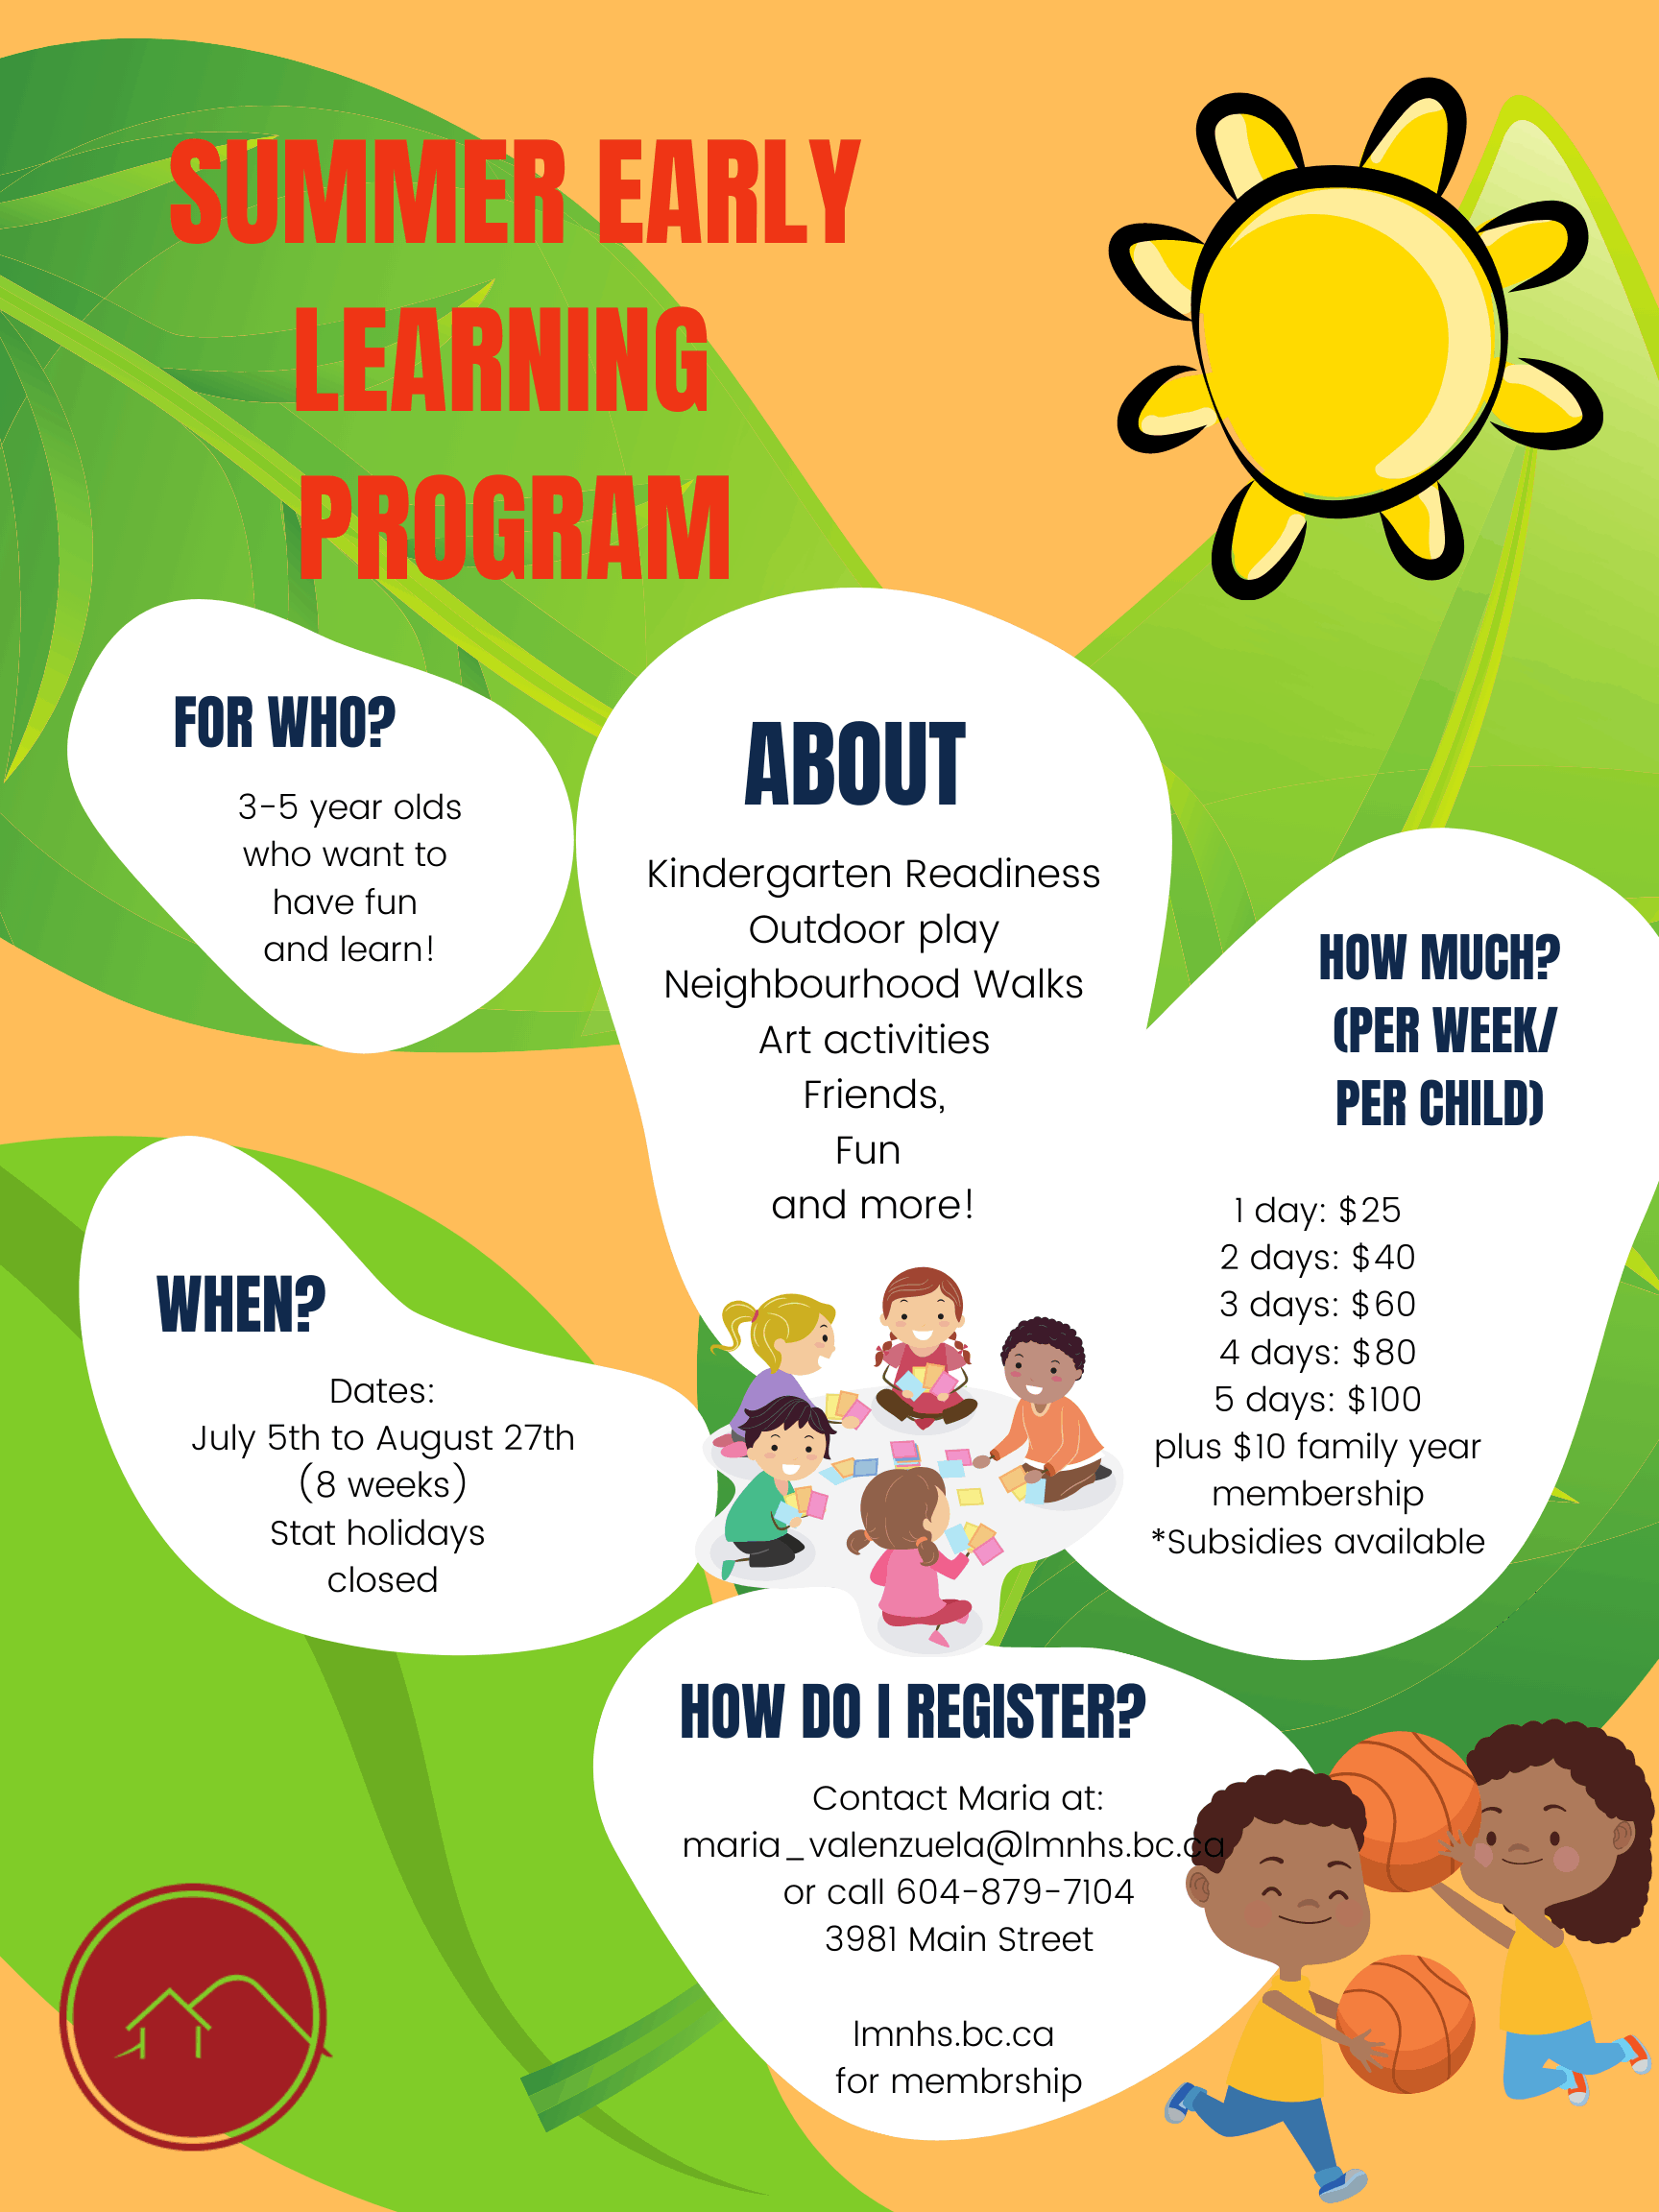 Summer early learning (1)